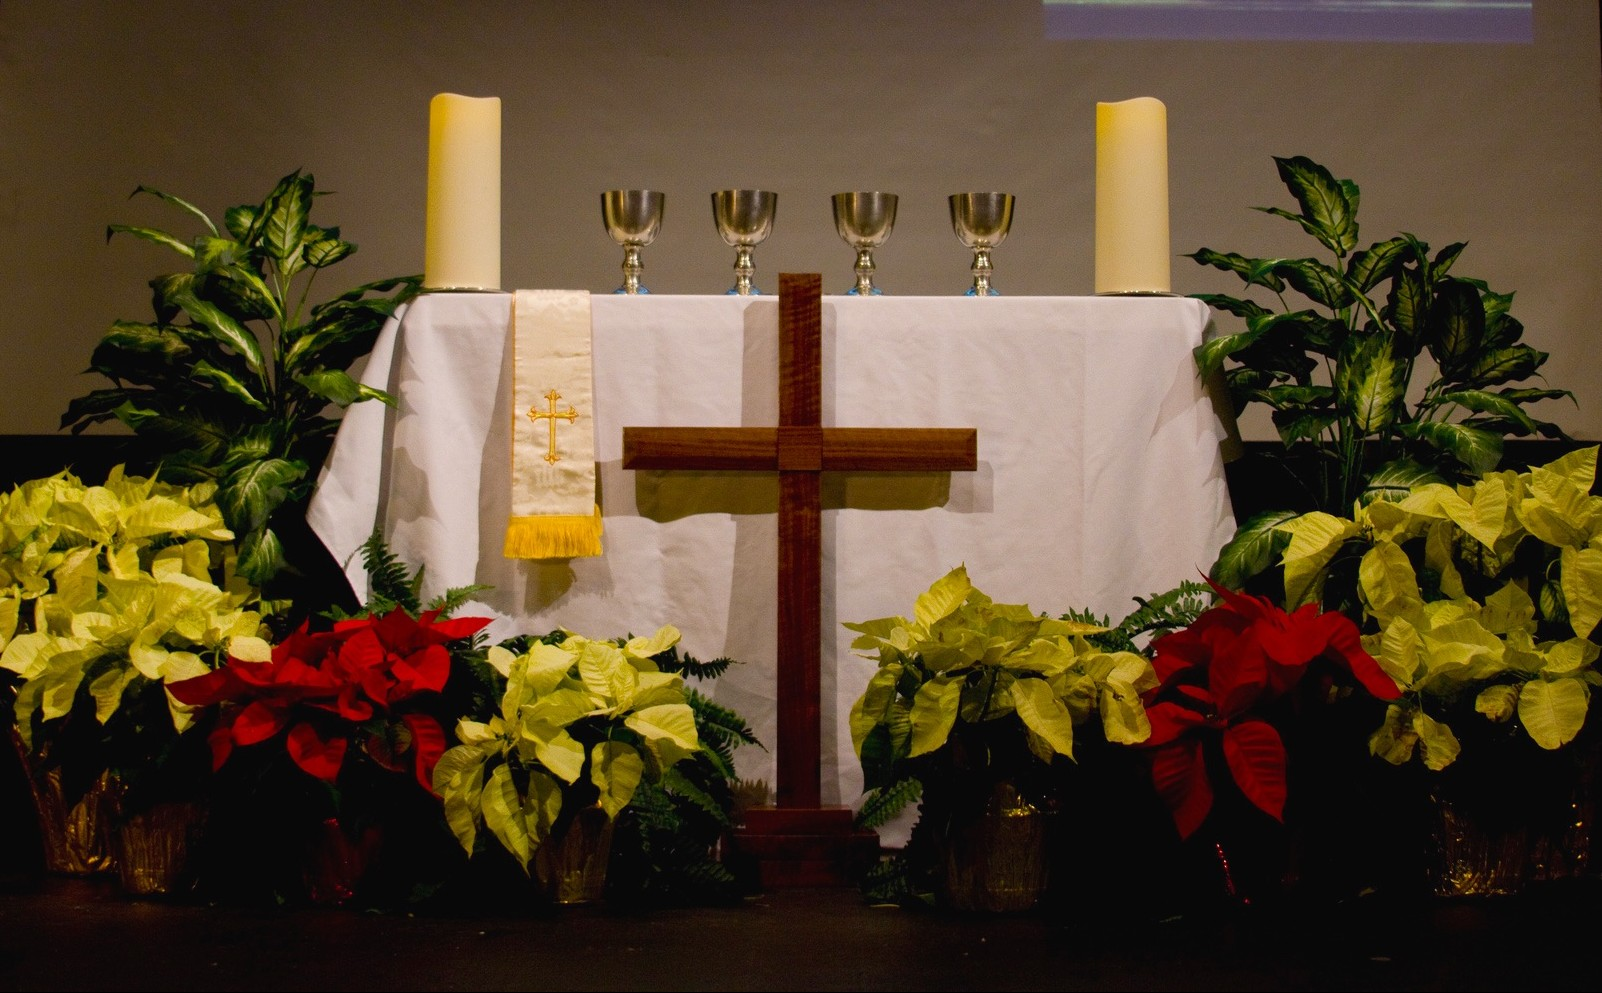 ccv is an anglican church plant who worships in the madi - Ccv Christmas Services